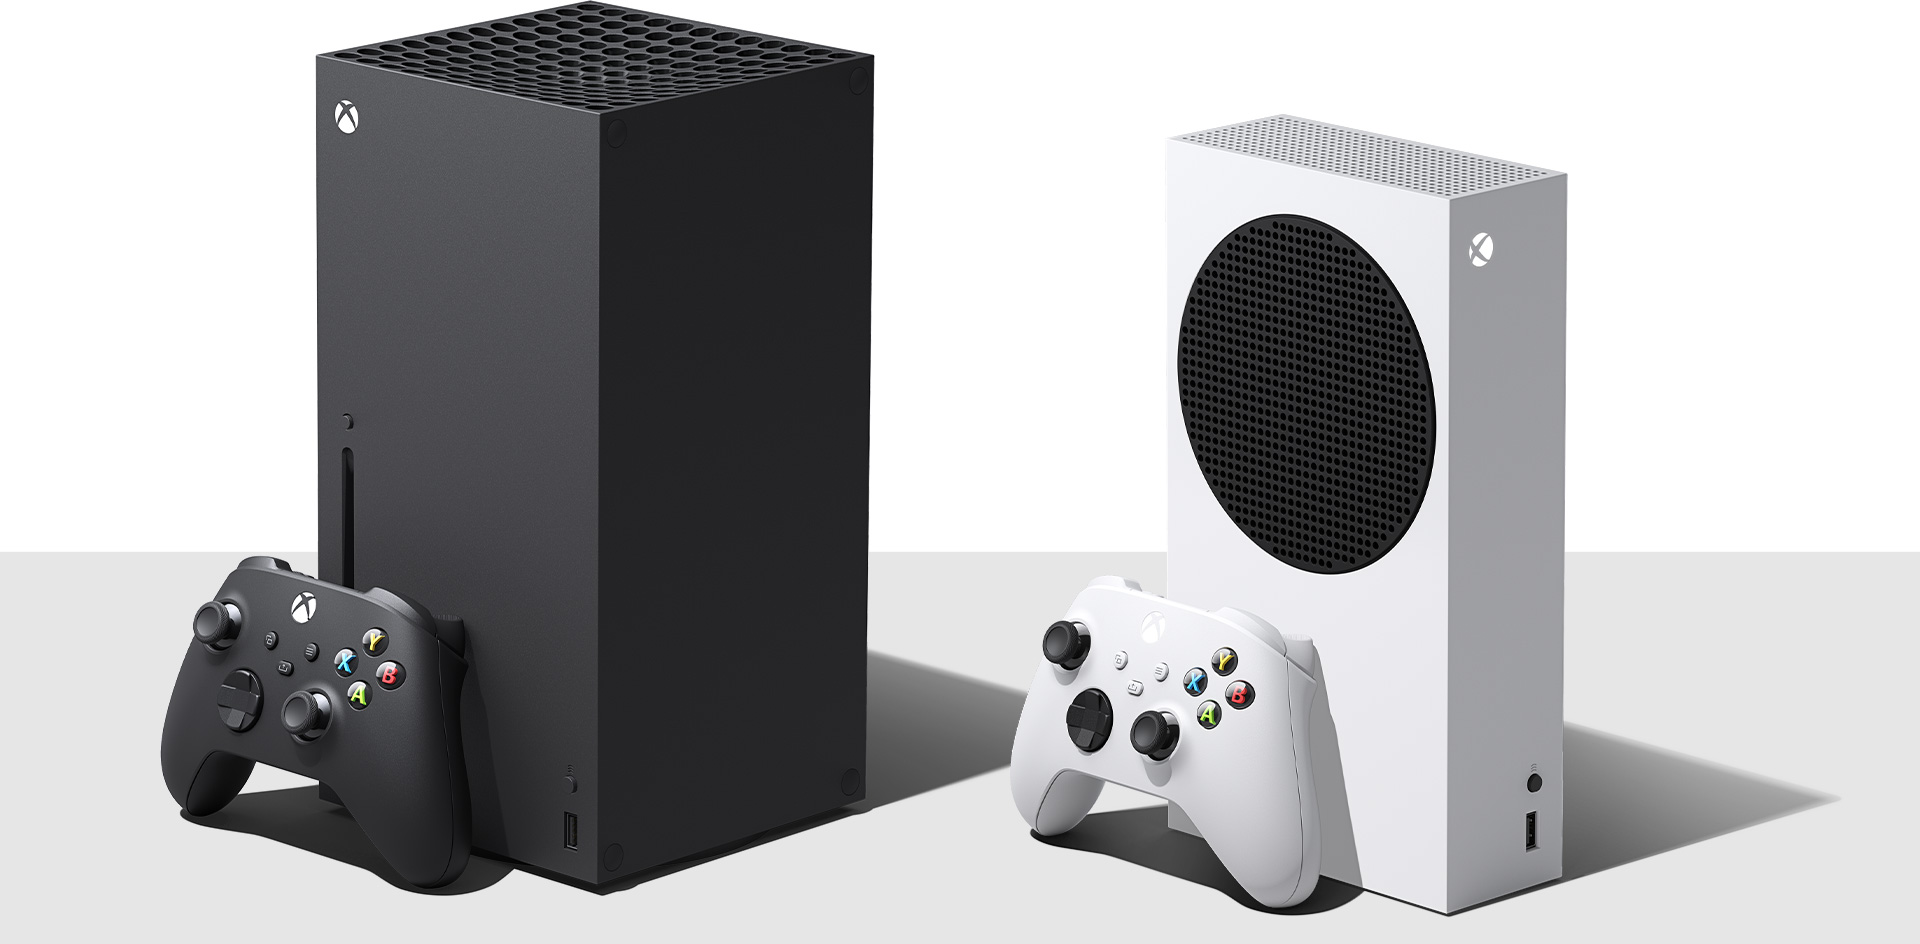 Xbox Series X and Xbox Series S console